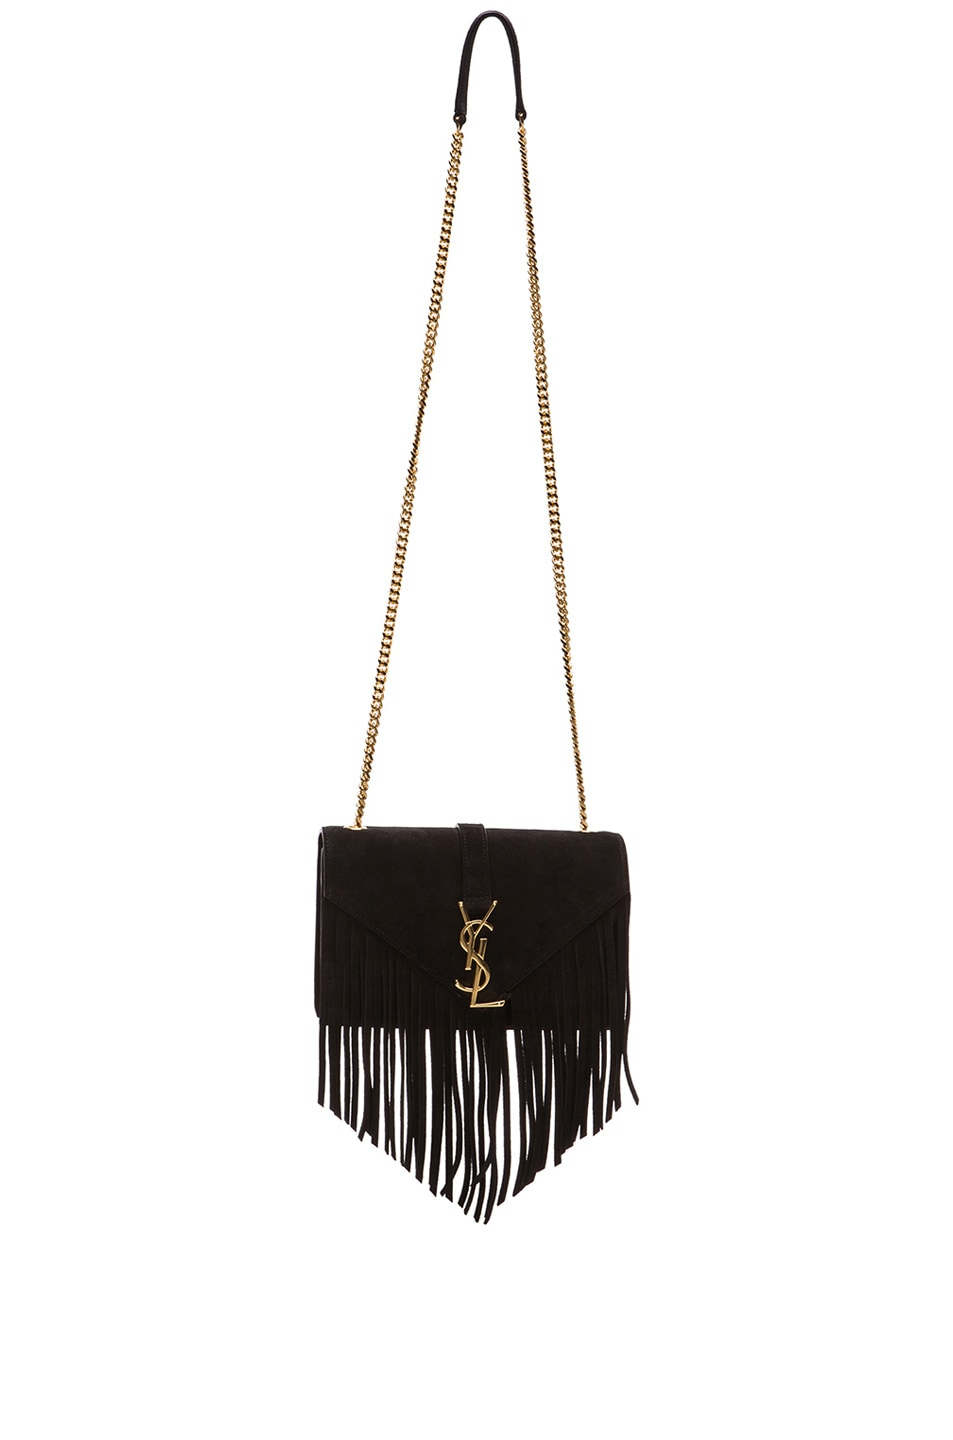 b1a843fee9 Image 1 of Saint Laurent Small Suede & Fringes Monogram Chain Bag in Black